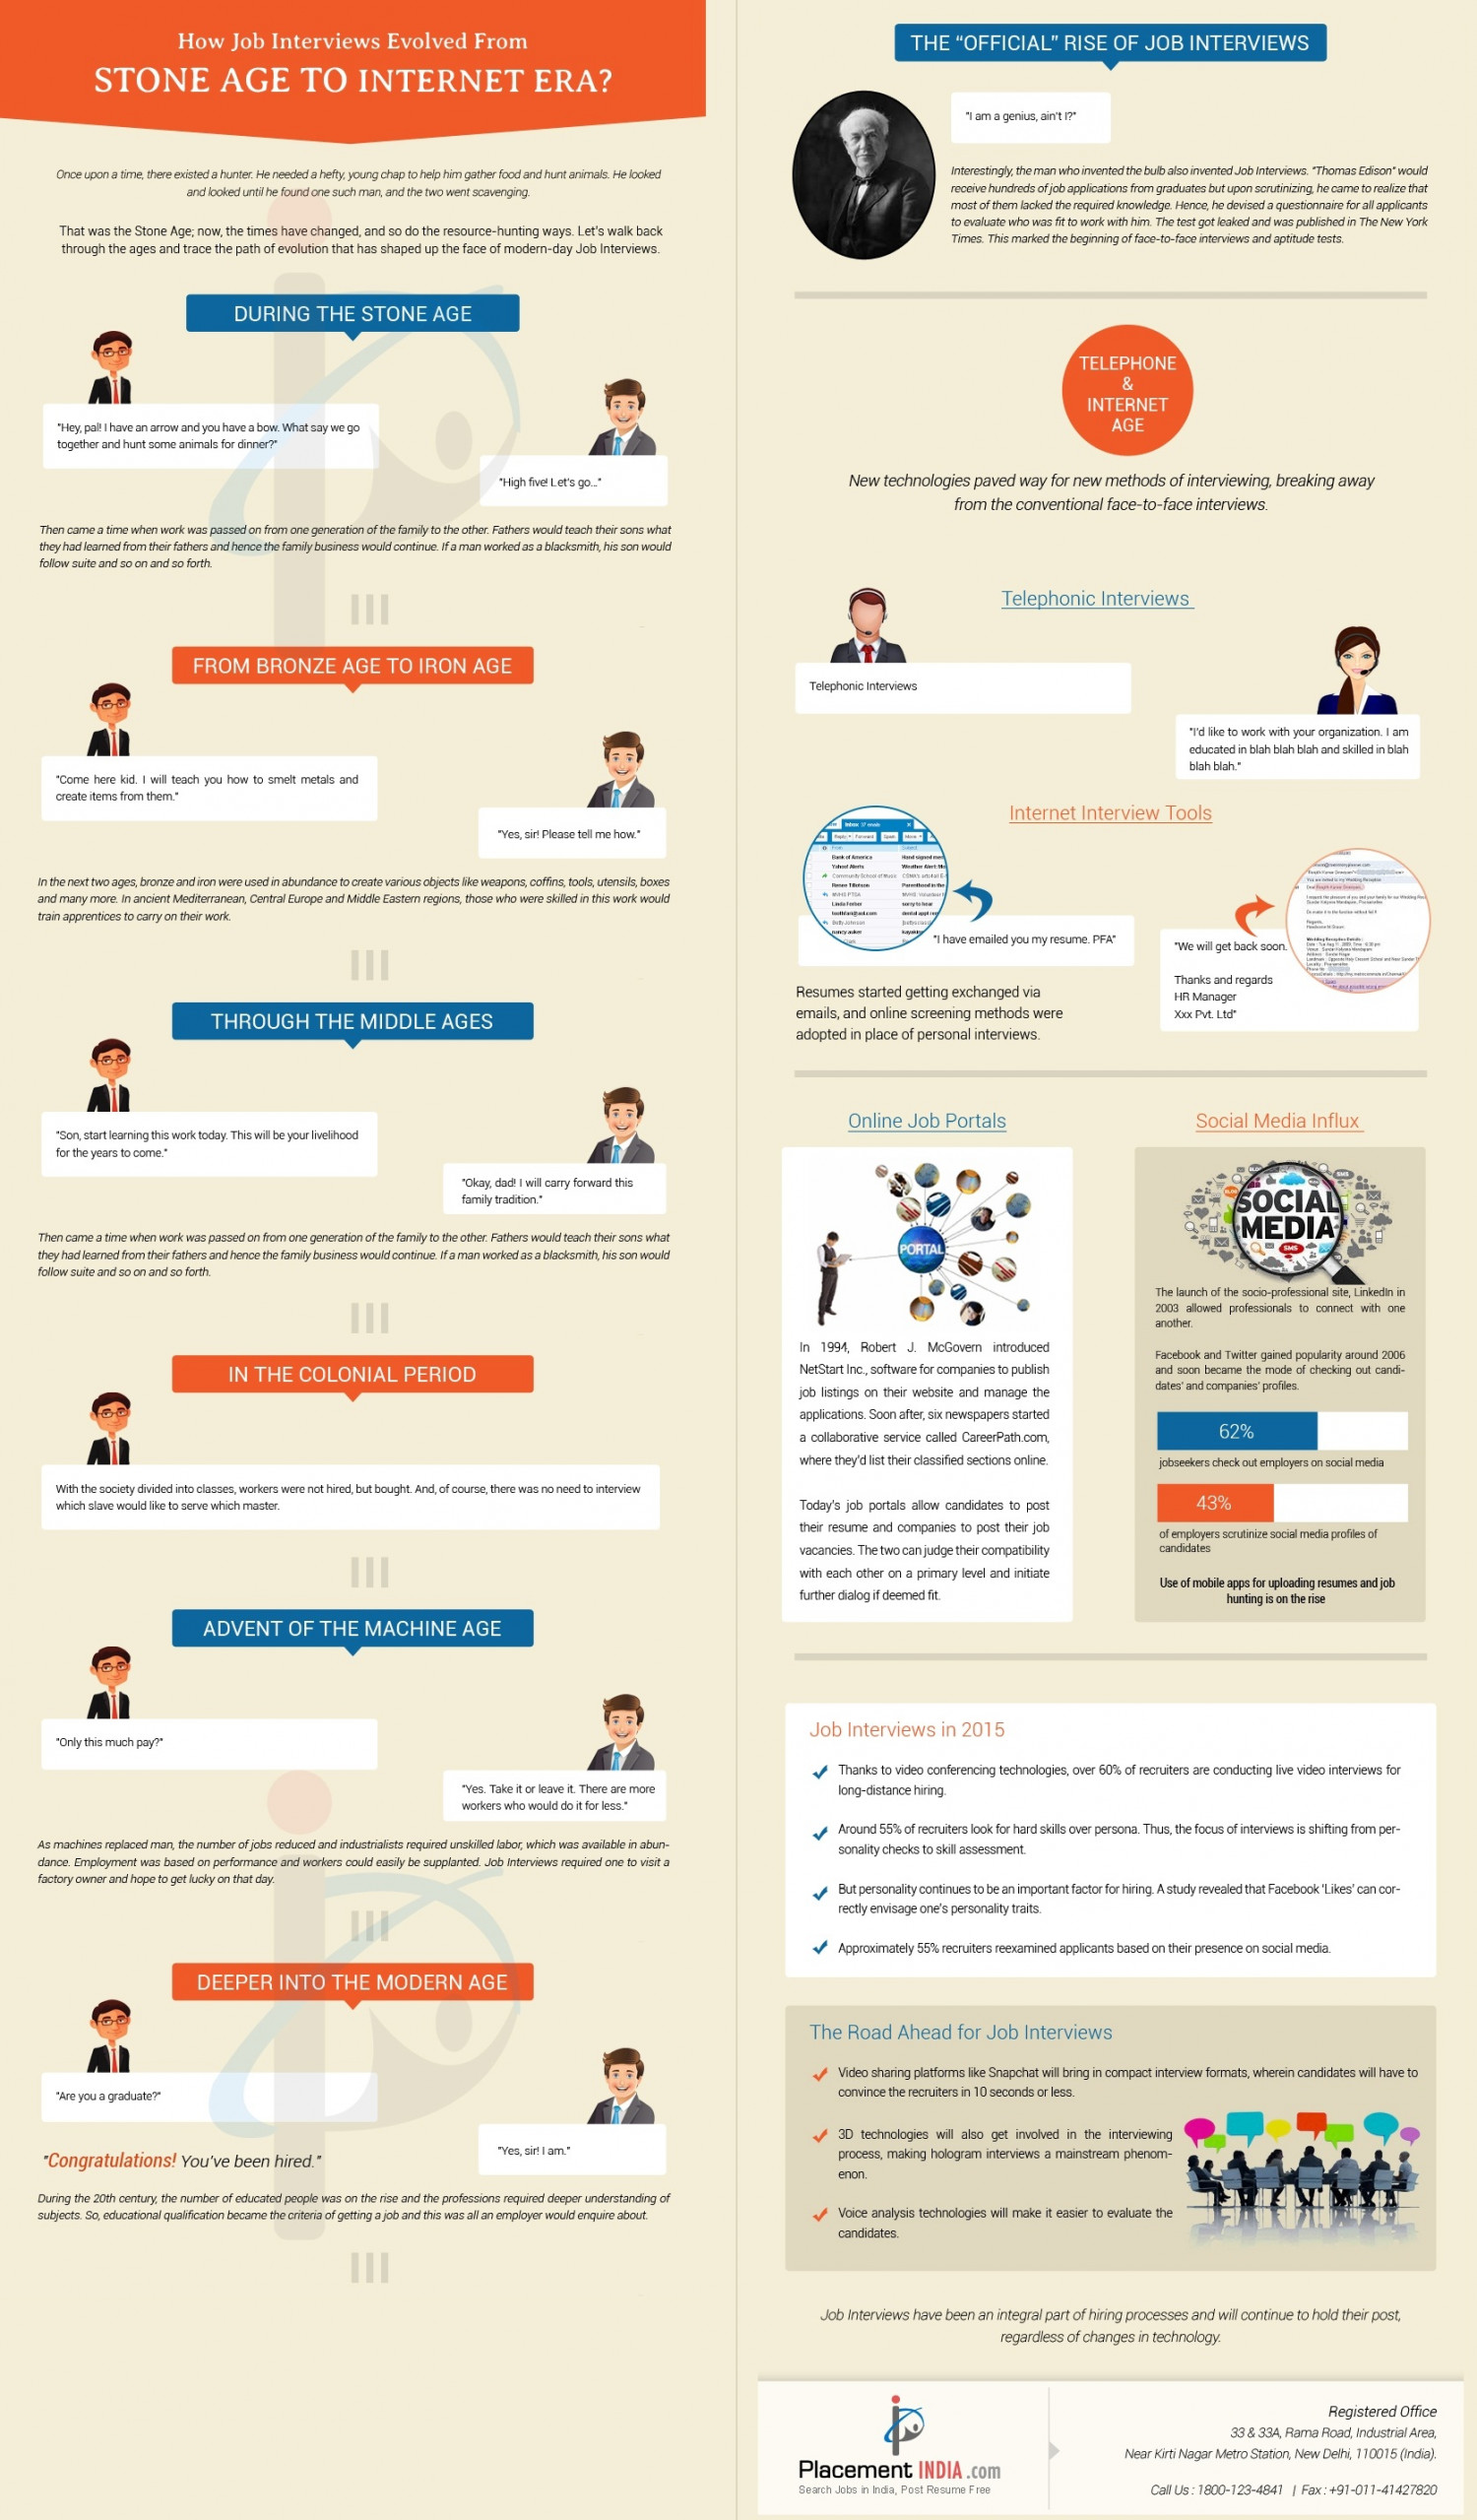 How Job Interviews Evolved From Stone Age to Internet Era?  Infographic